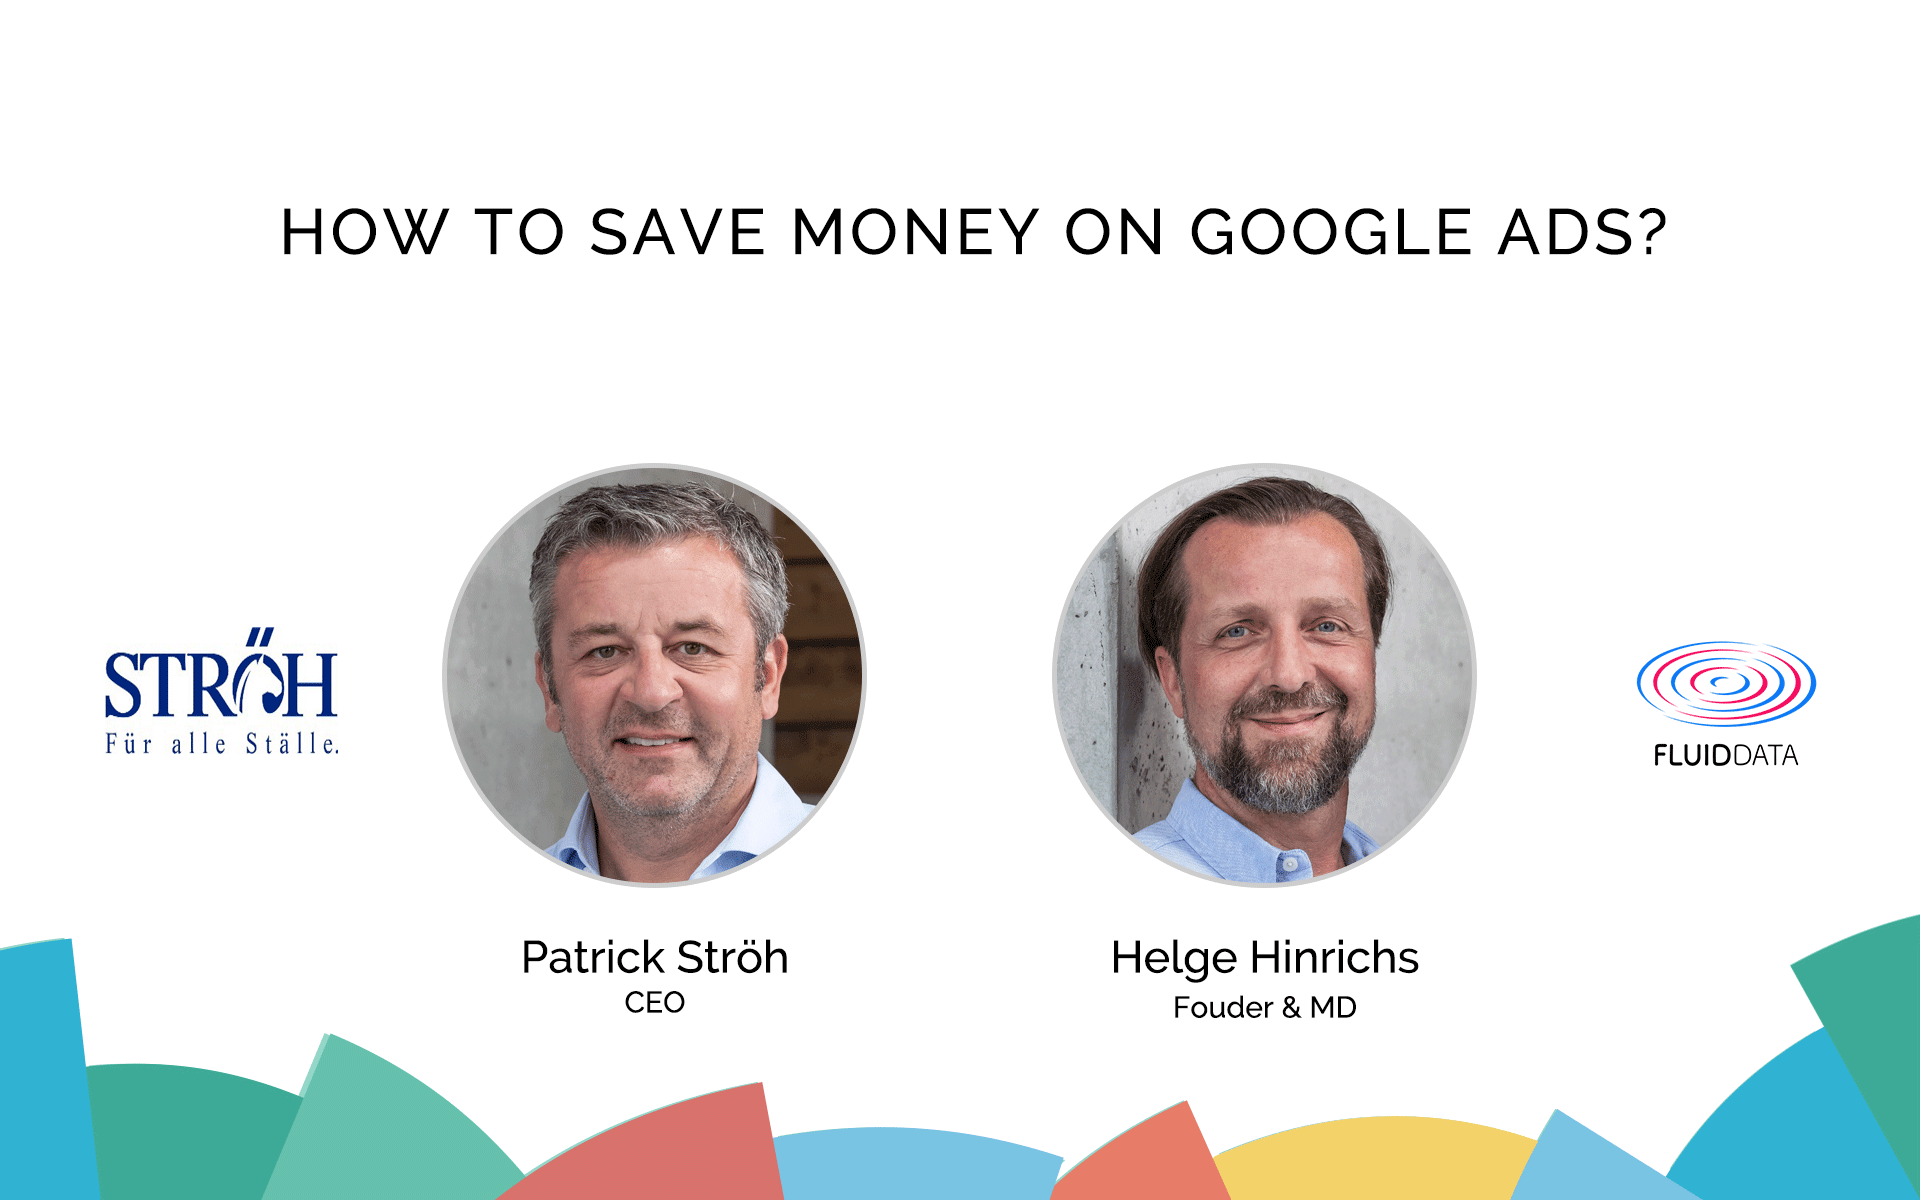 How to save money on Google Ads?